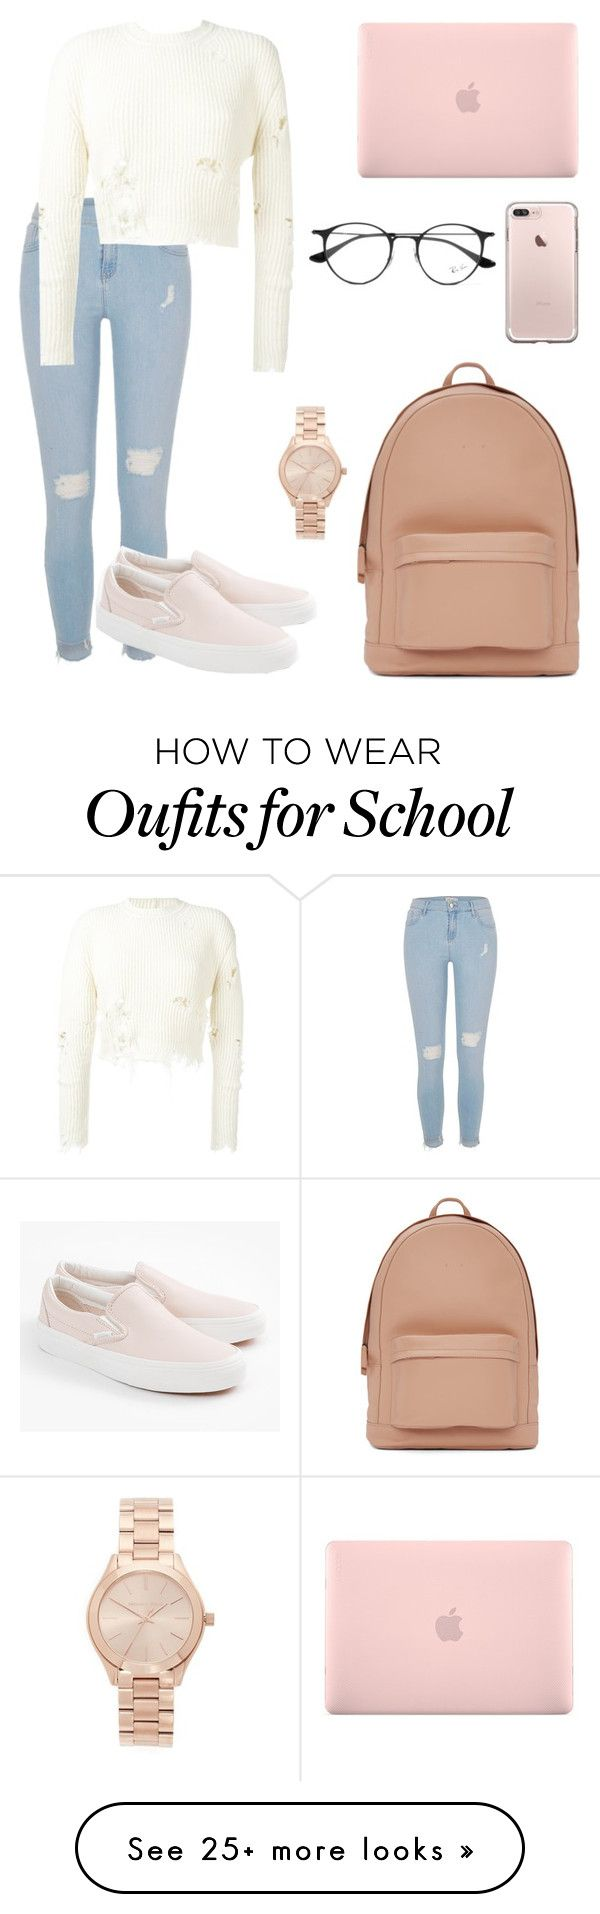 """""""Day at school """" by gabrielle-kamielle on Polyvore featuring River Island, adidas Originals, Vans, PB 0110, Incase, Ray-Ban and Michael Kors"""